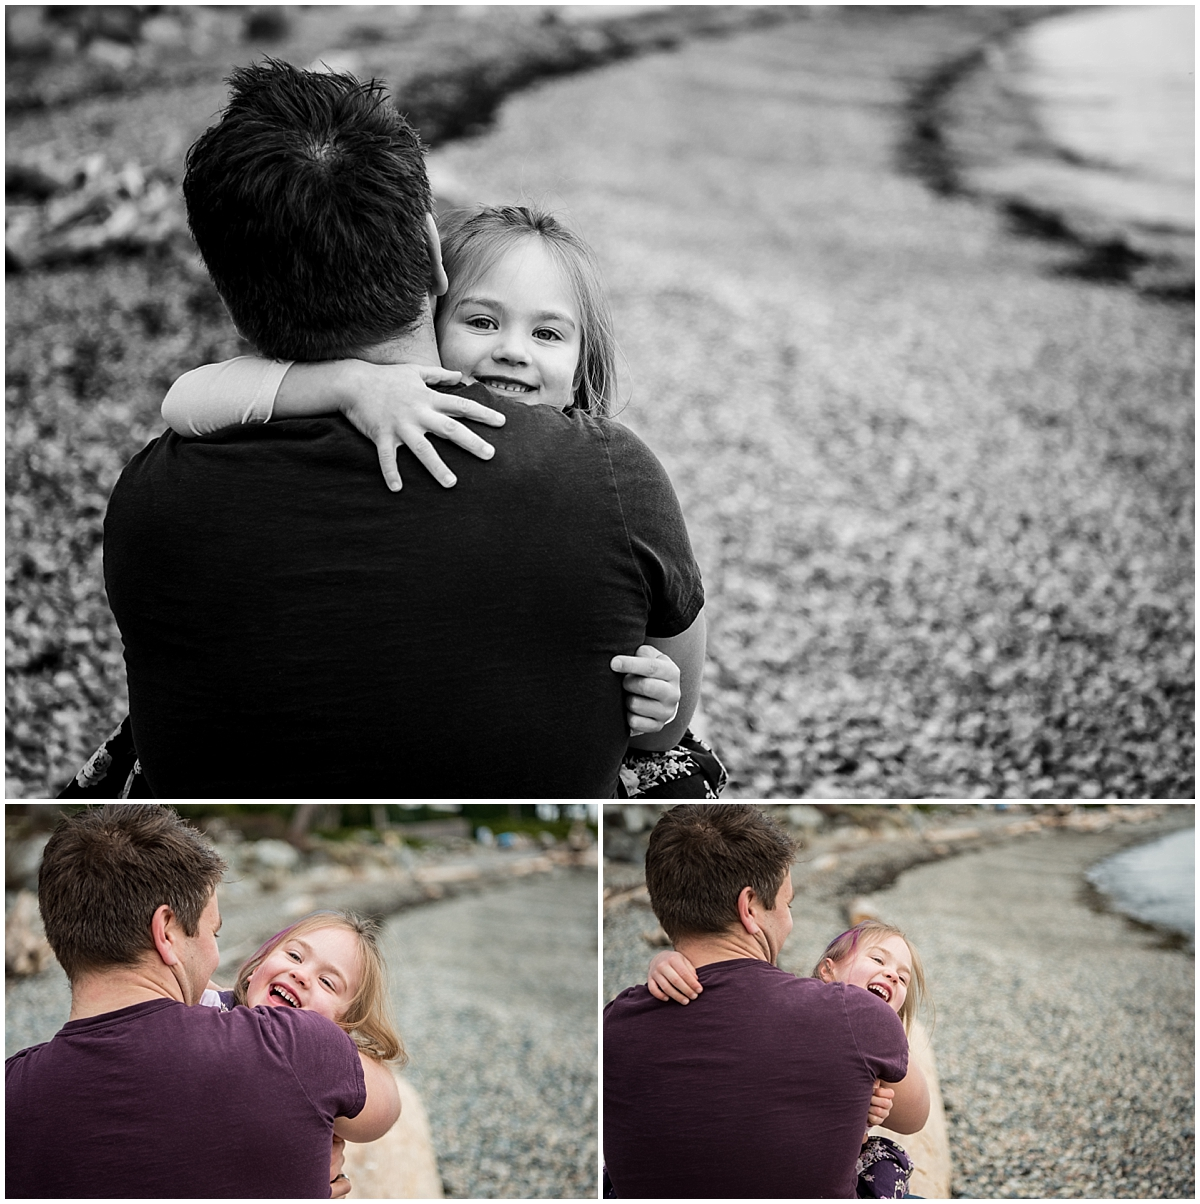 Squamish-Photographer-Family-Photography-Kids-Children-Beach-Gibsons-Sechelt-Robert's-Creek-Katia-Grondin